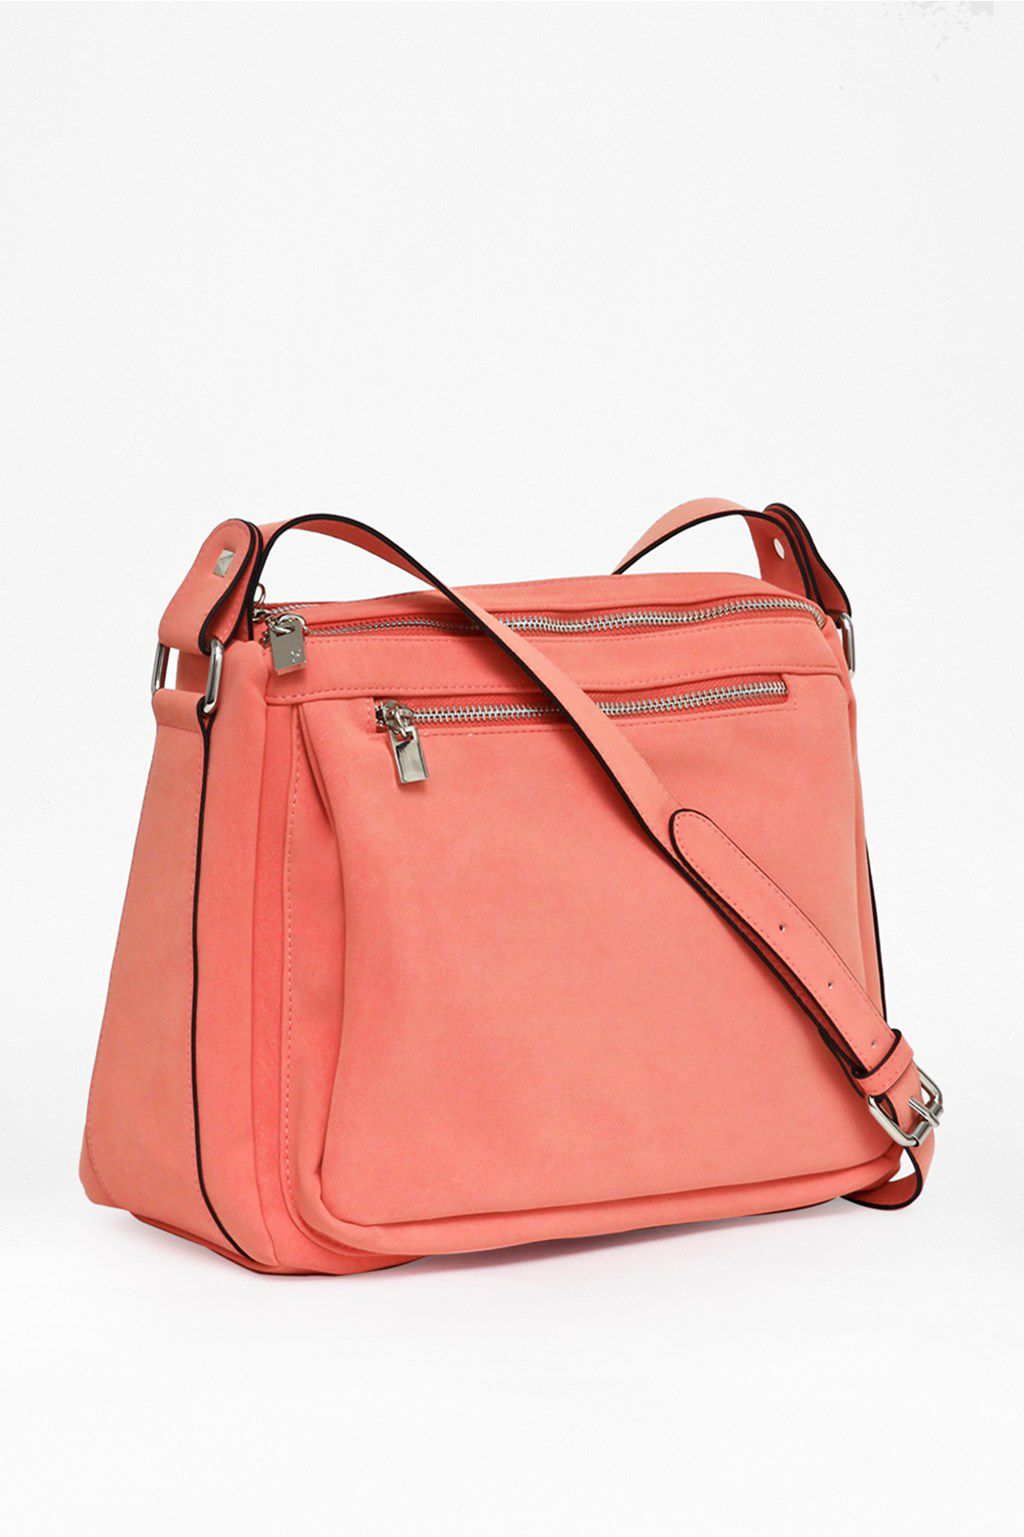 Delta large crossbody bag